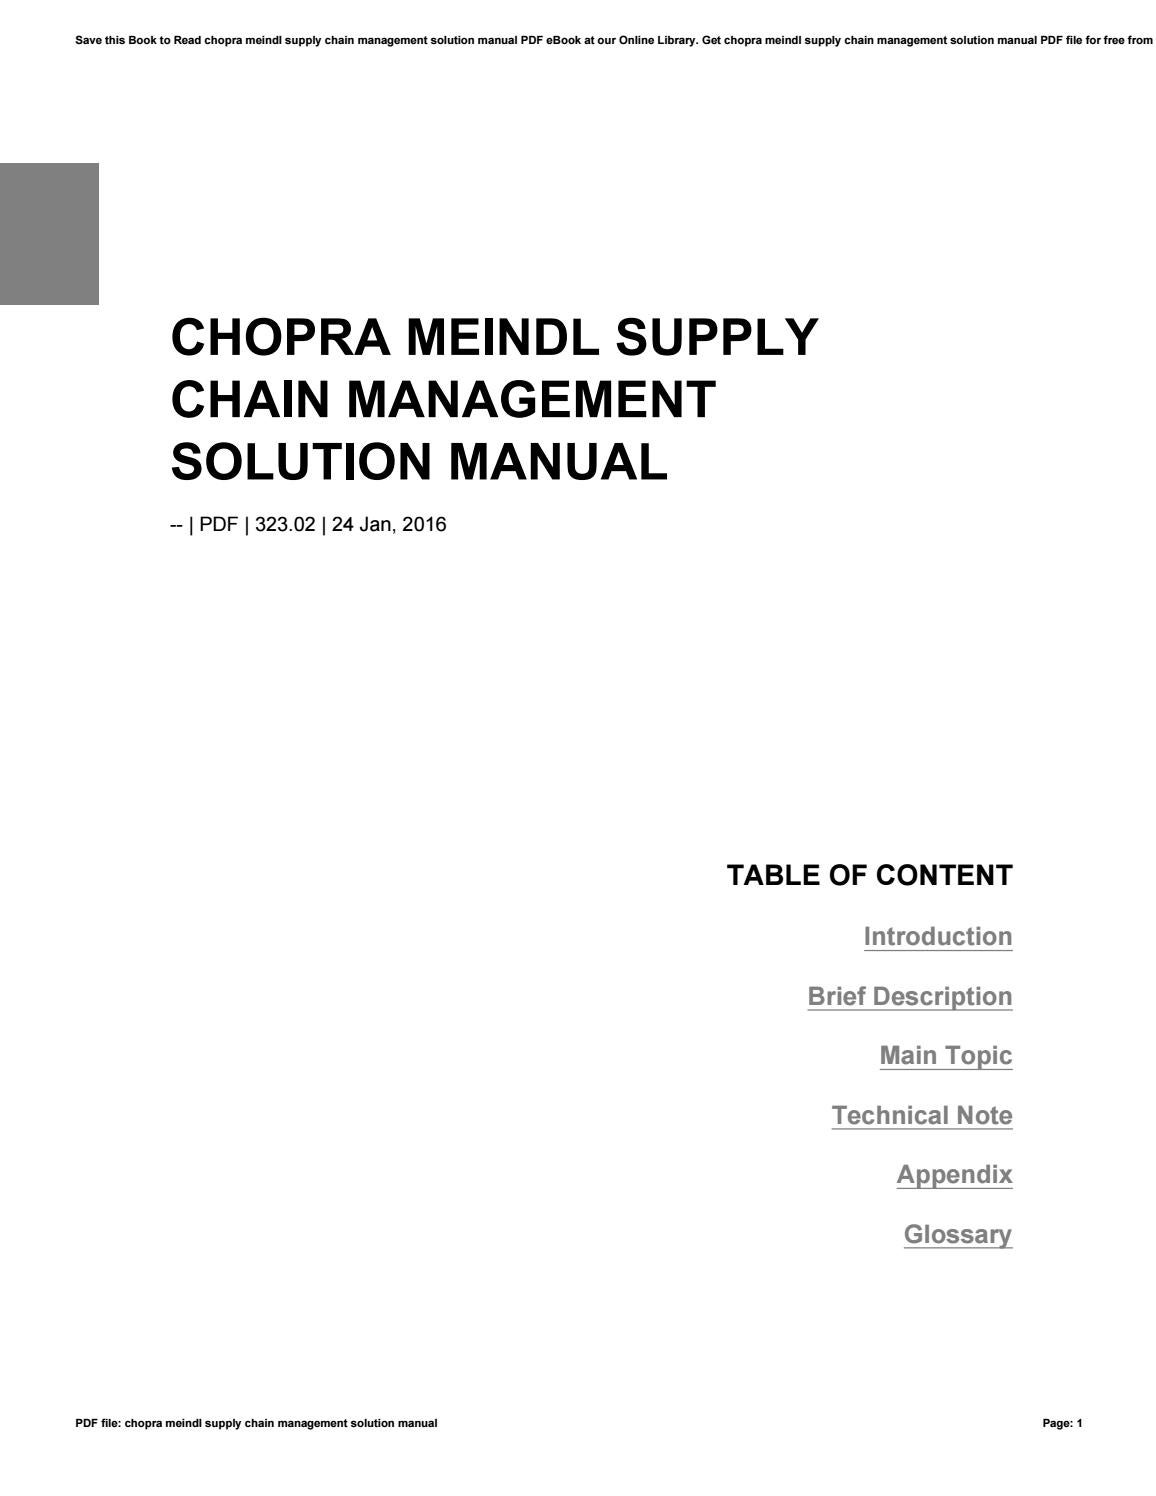 Chopra meindl supply chain management solution manual by riono98giras -  issuu